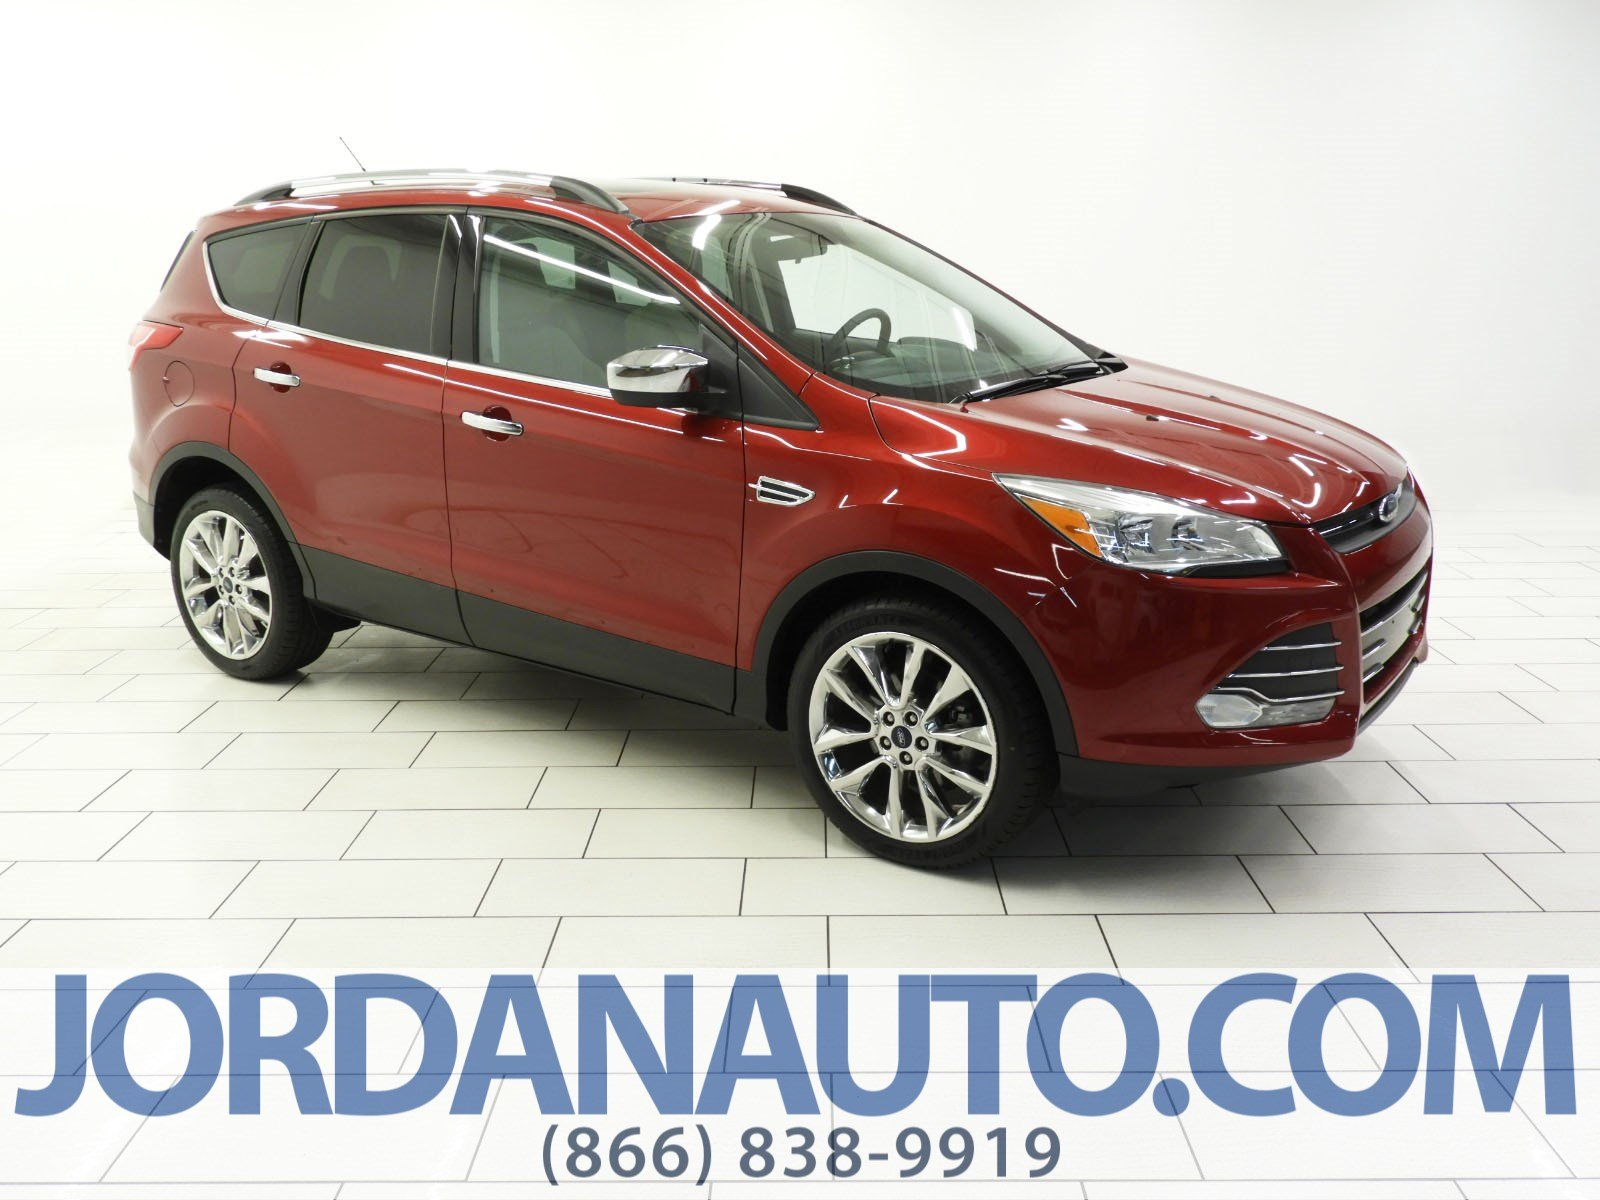 Jordan Ford Mishawaka >> Certified Pre Owned 2016 Ford Escape Se Fwd Sport Utility